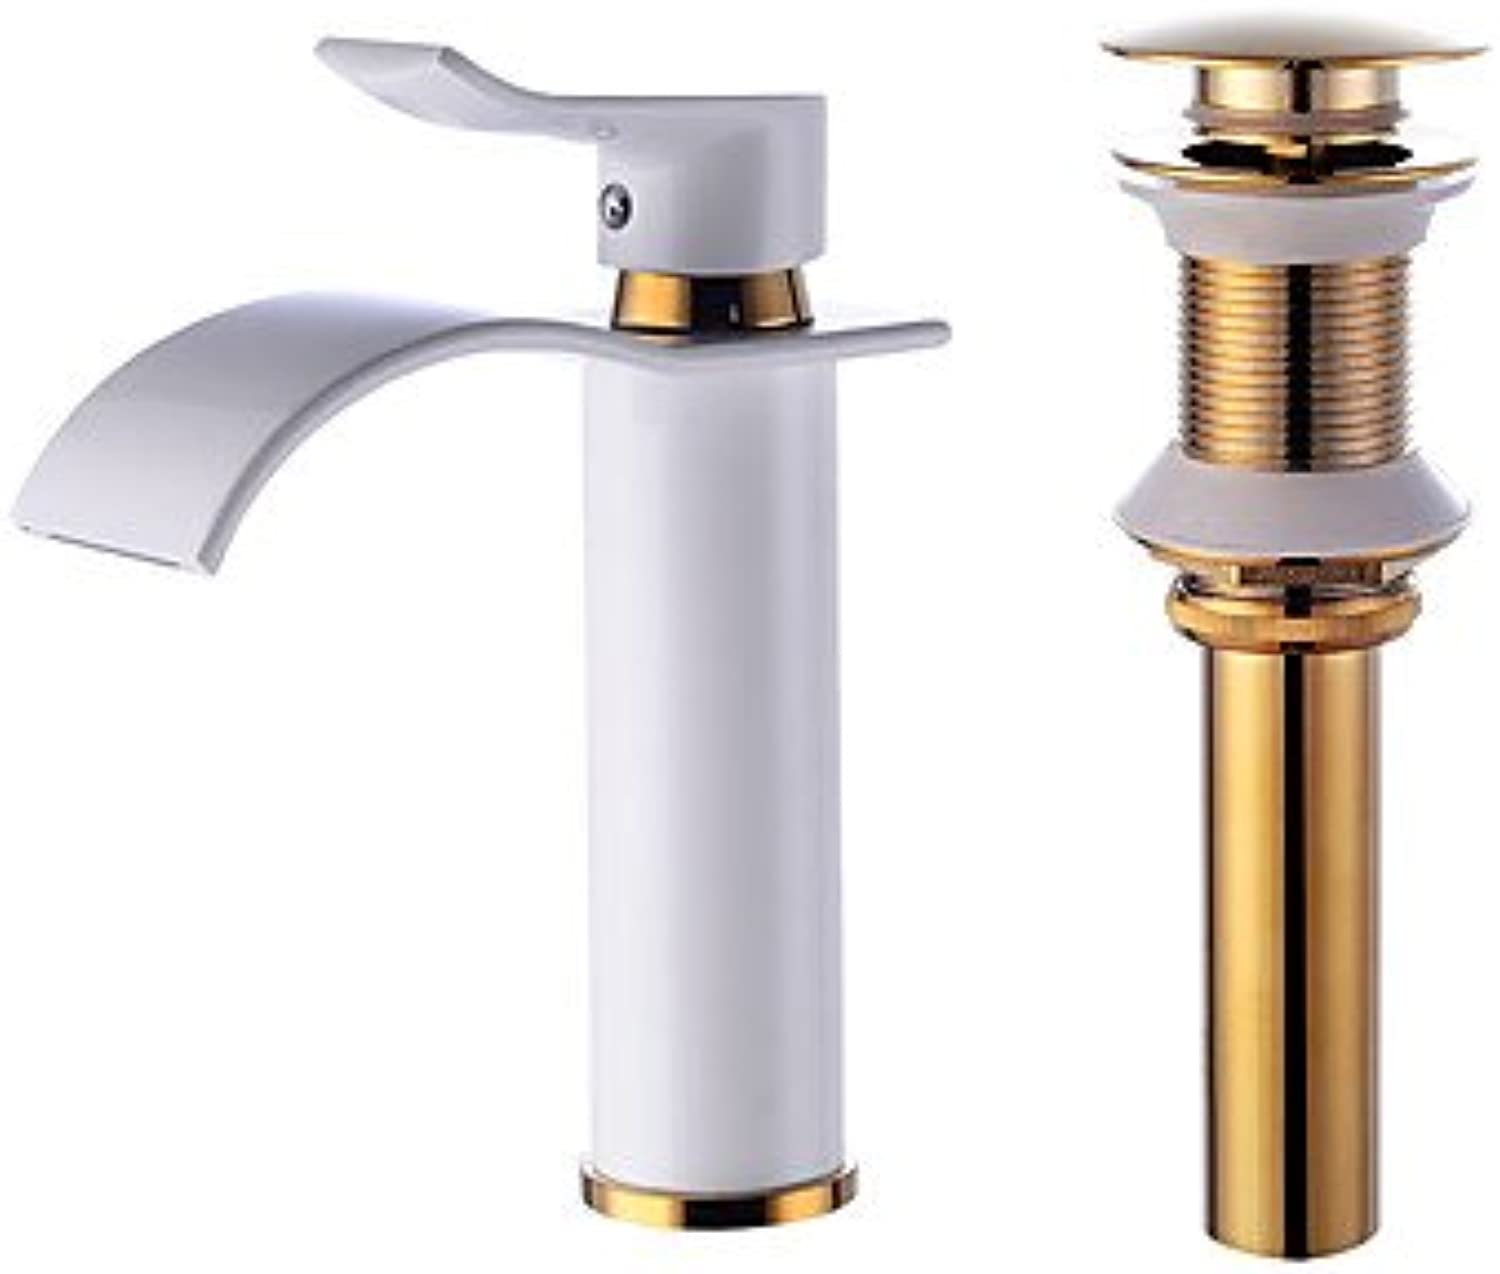 ZYT Centerset Waterfall with Ceramic Valve One HoleBathroom Sink Faucet